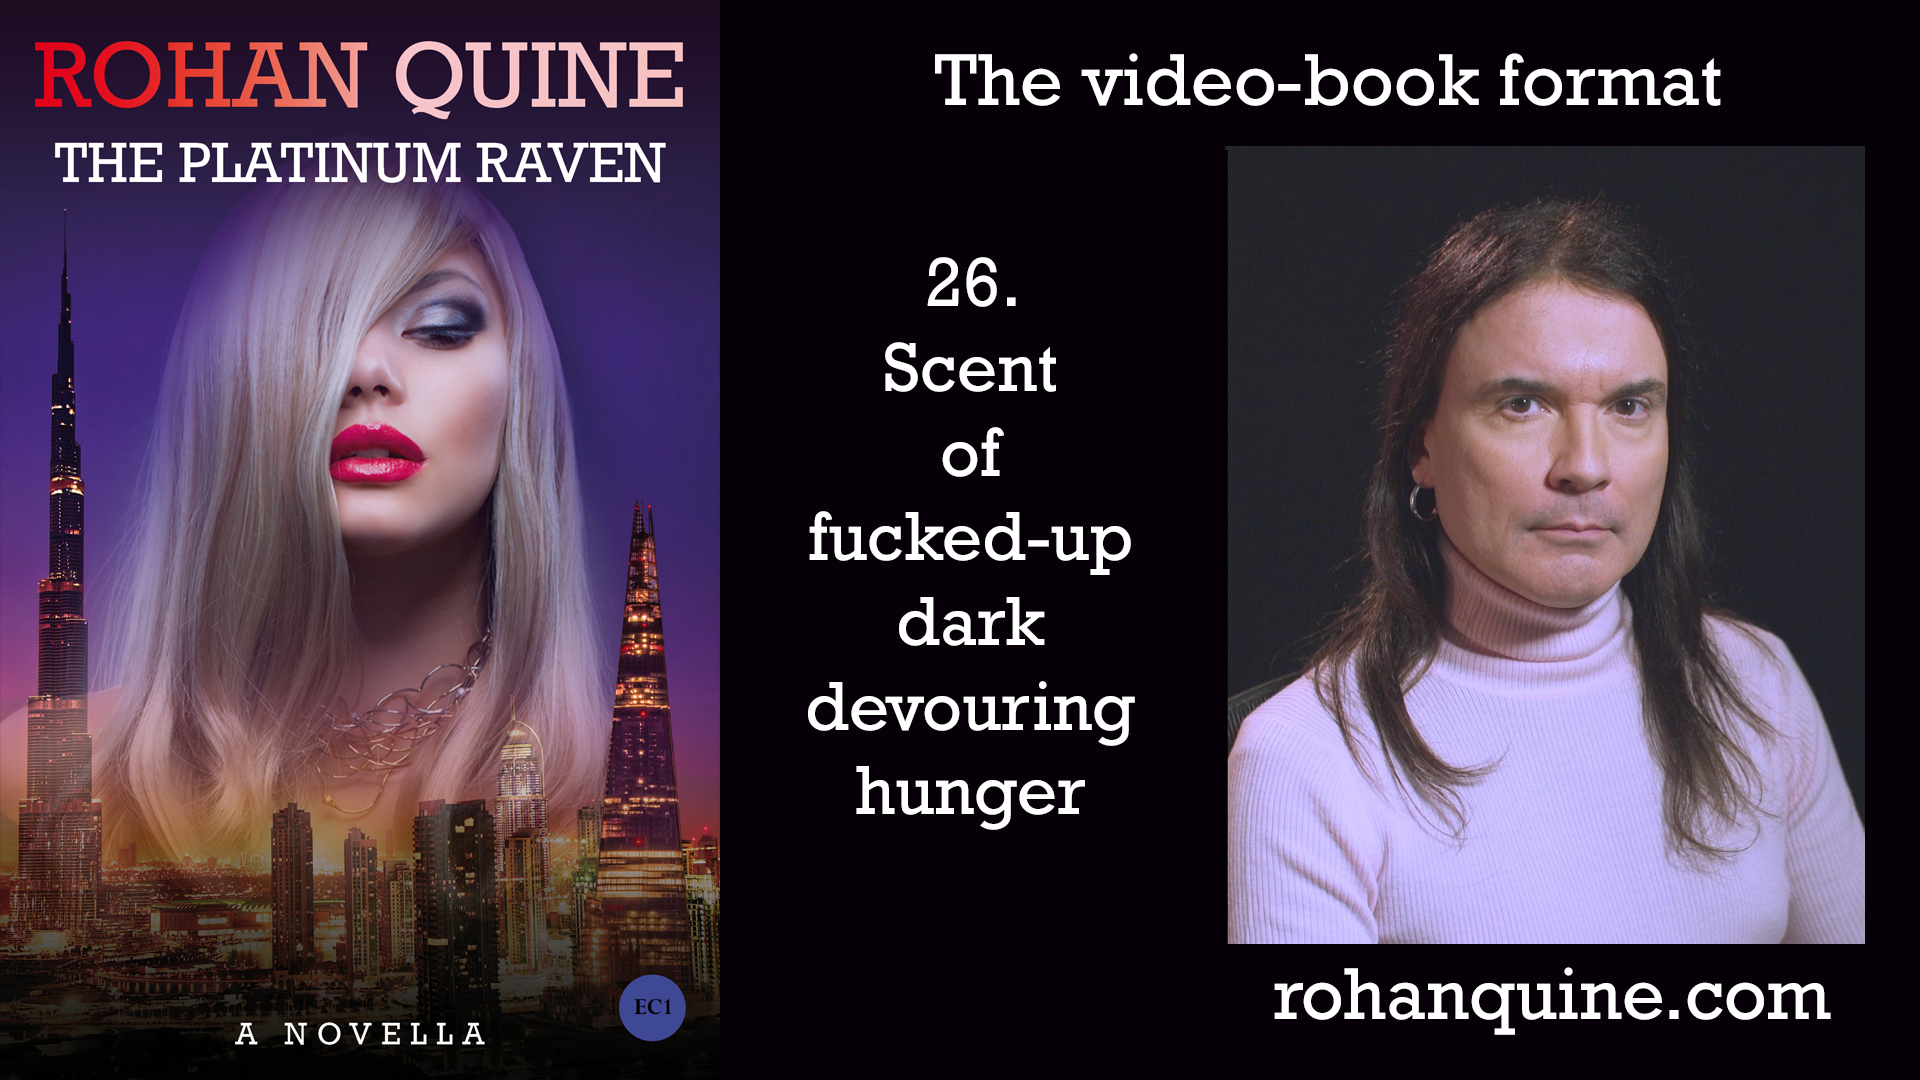 THE PLATINUM RAVEN by Rohan Quine - video-book format - chapter 26